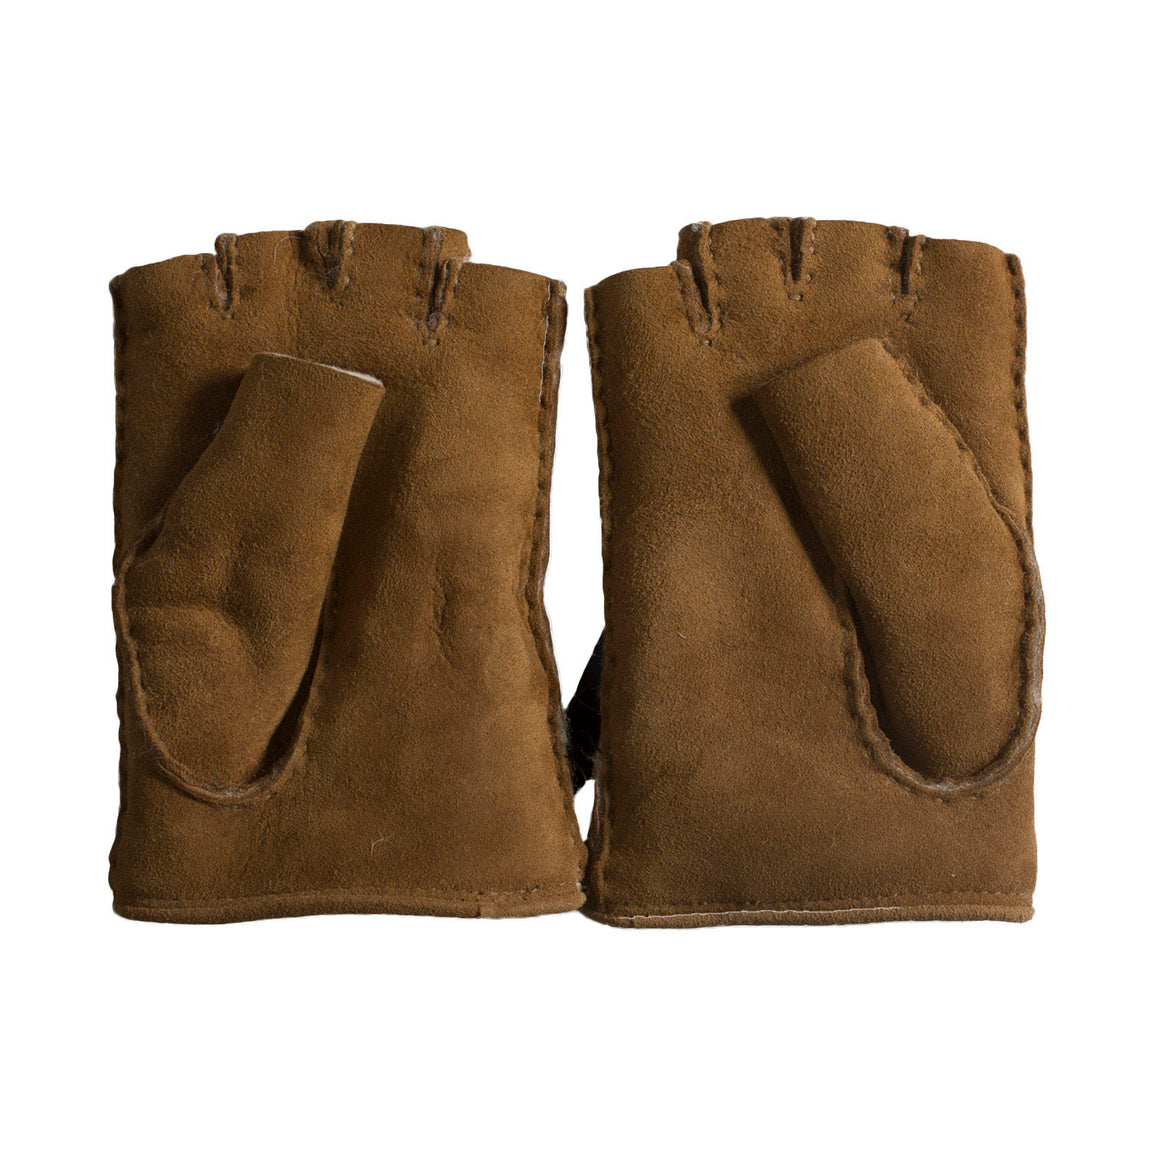 UGG Mckay Fingerless Driver Chestnut Gloves - Women's